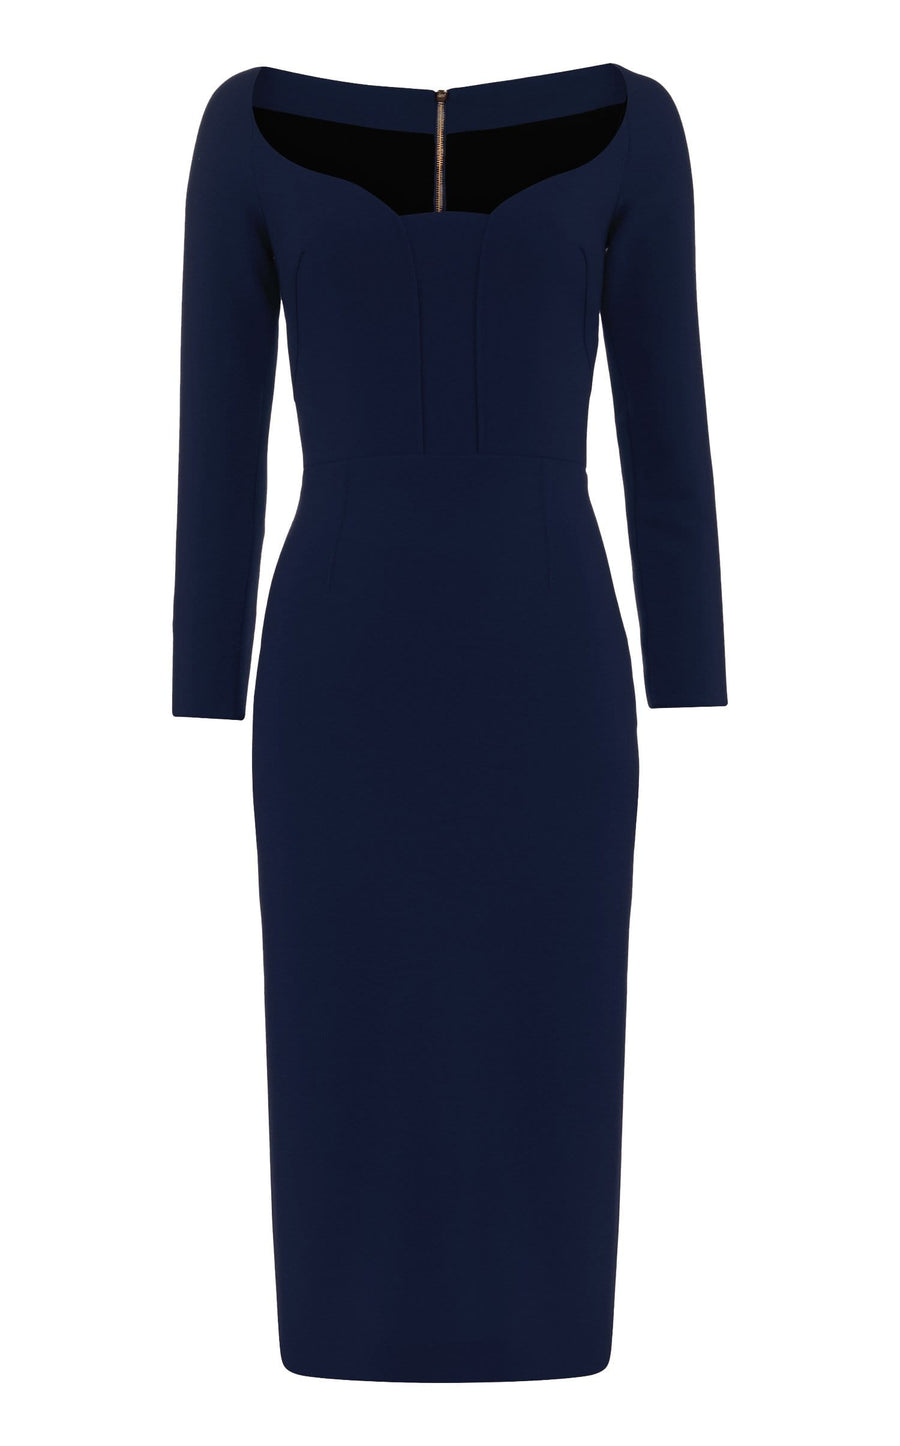 Ardon Dress In Navy from Roland Mouret